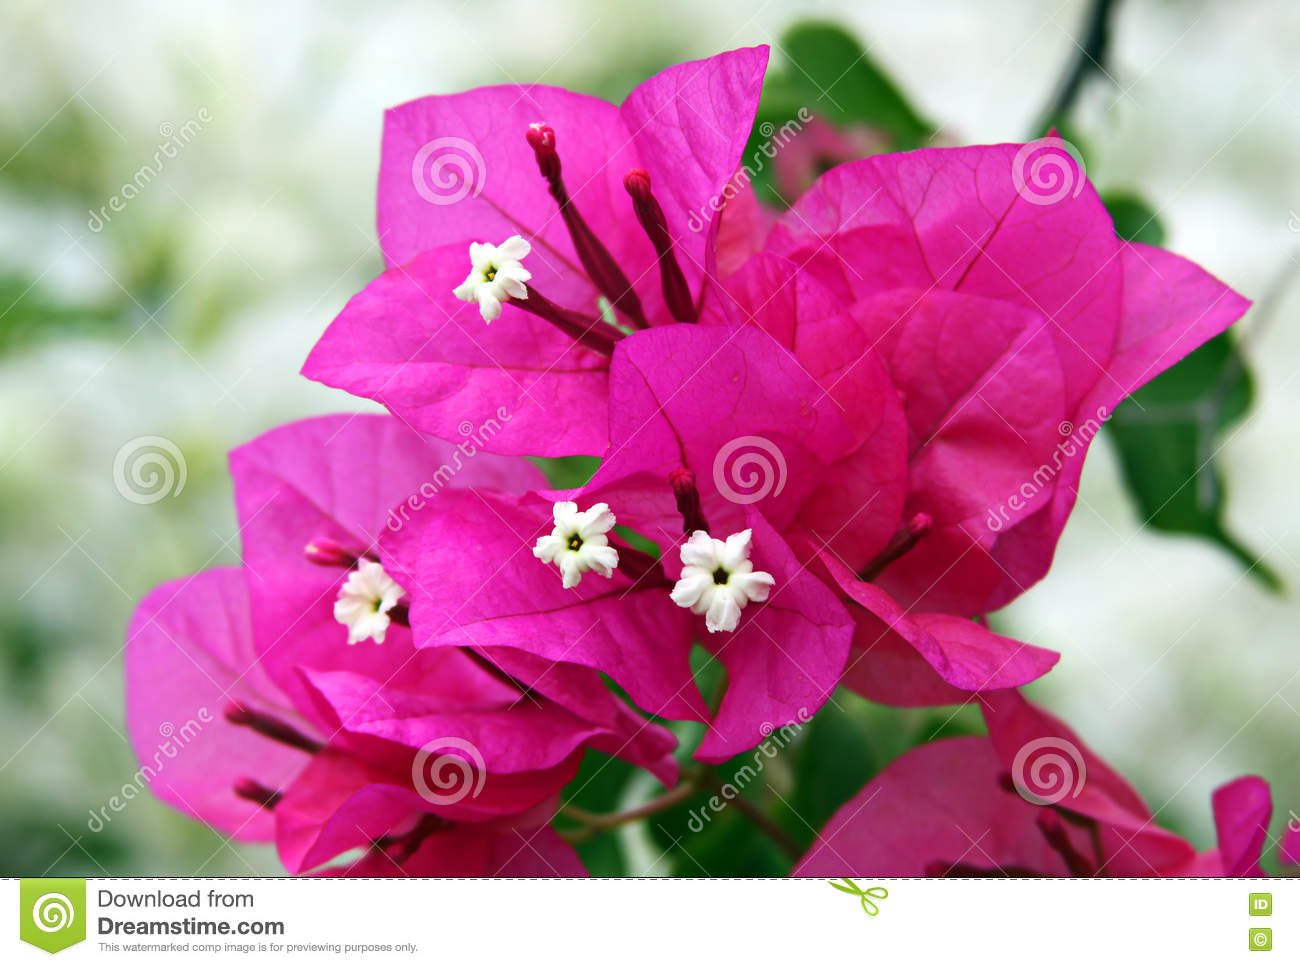 Flowers and bracts of bougainvillea